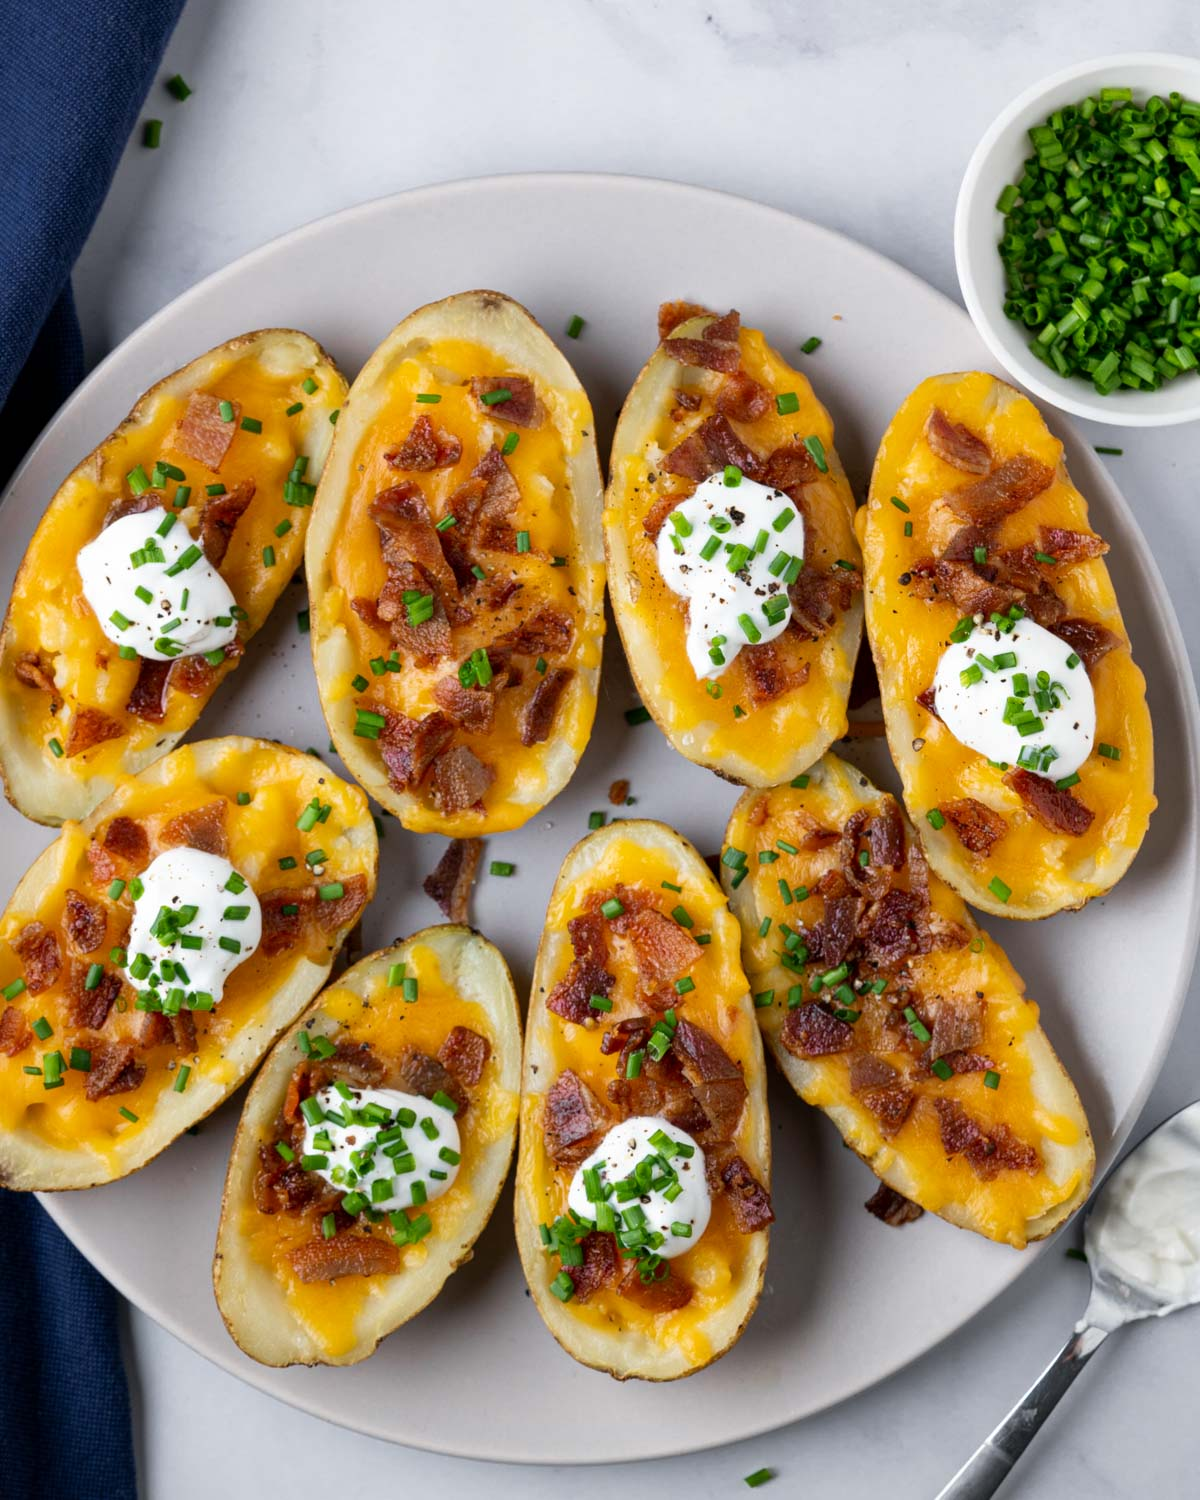 plate of potato skins made in the air fryer